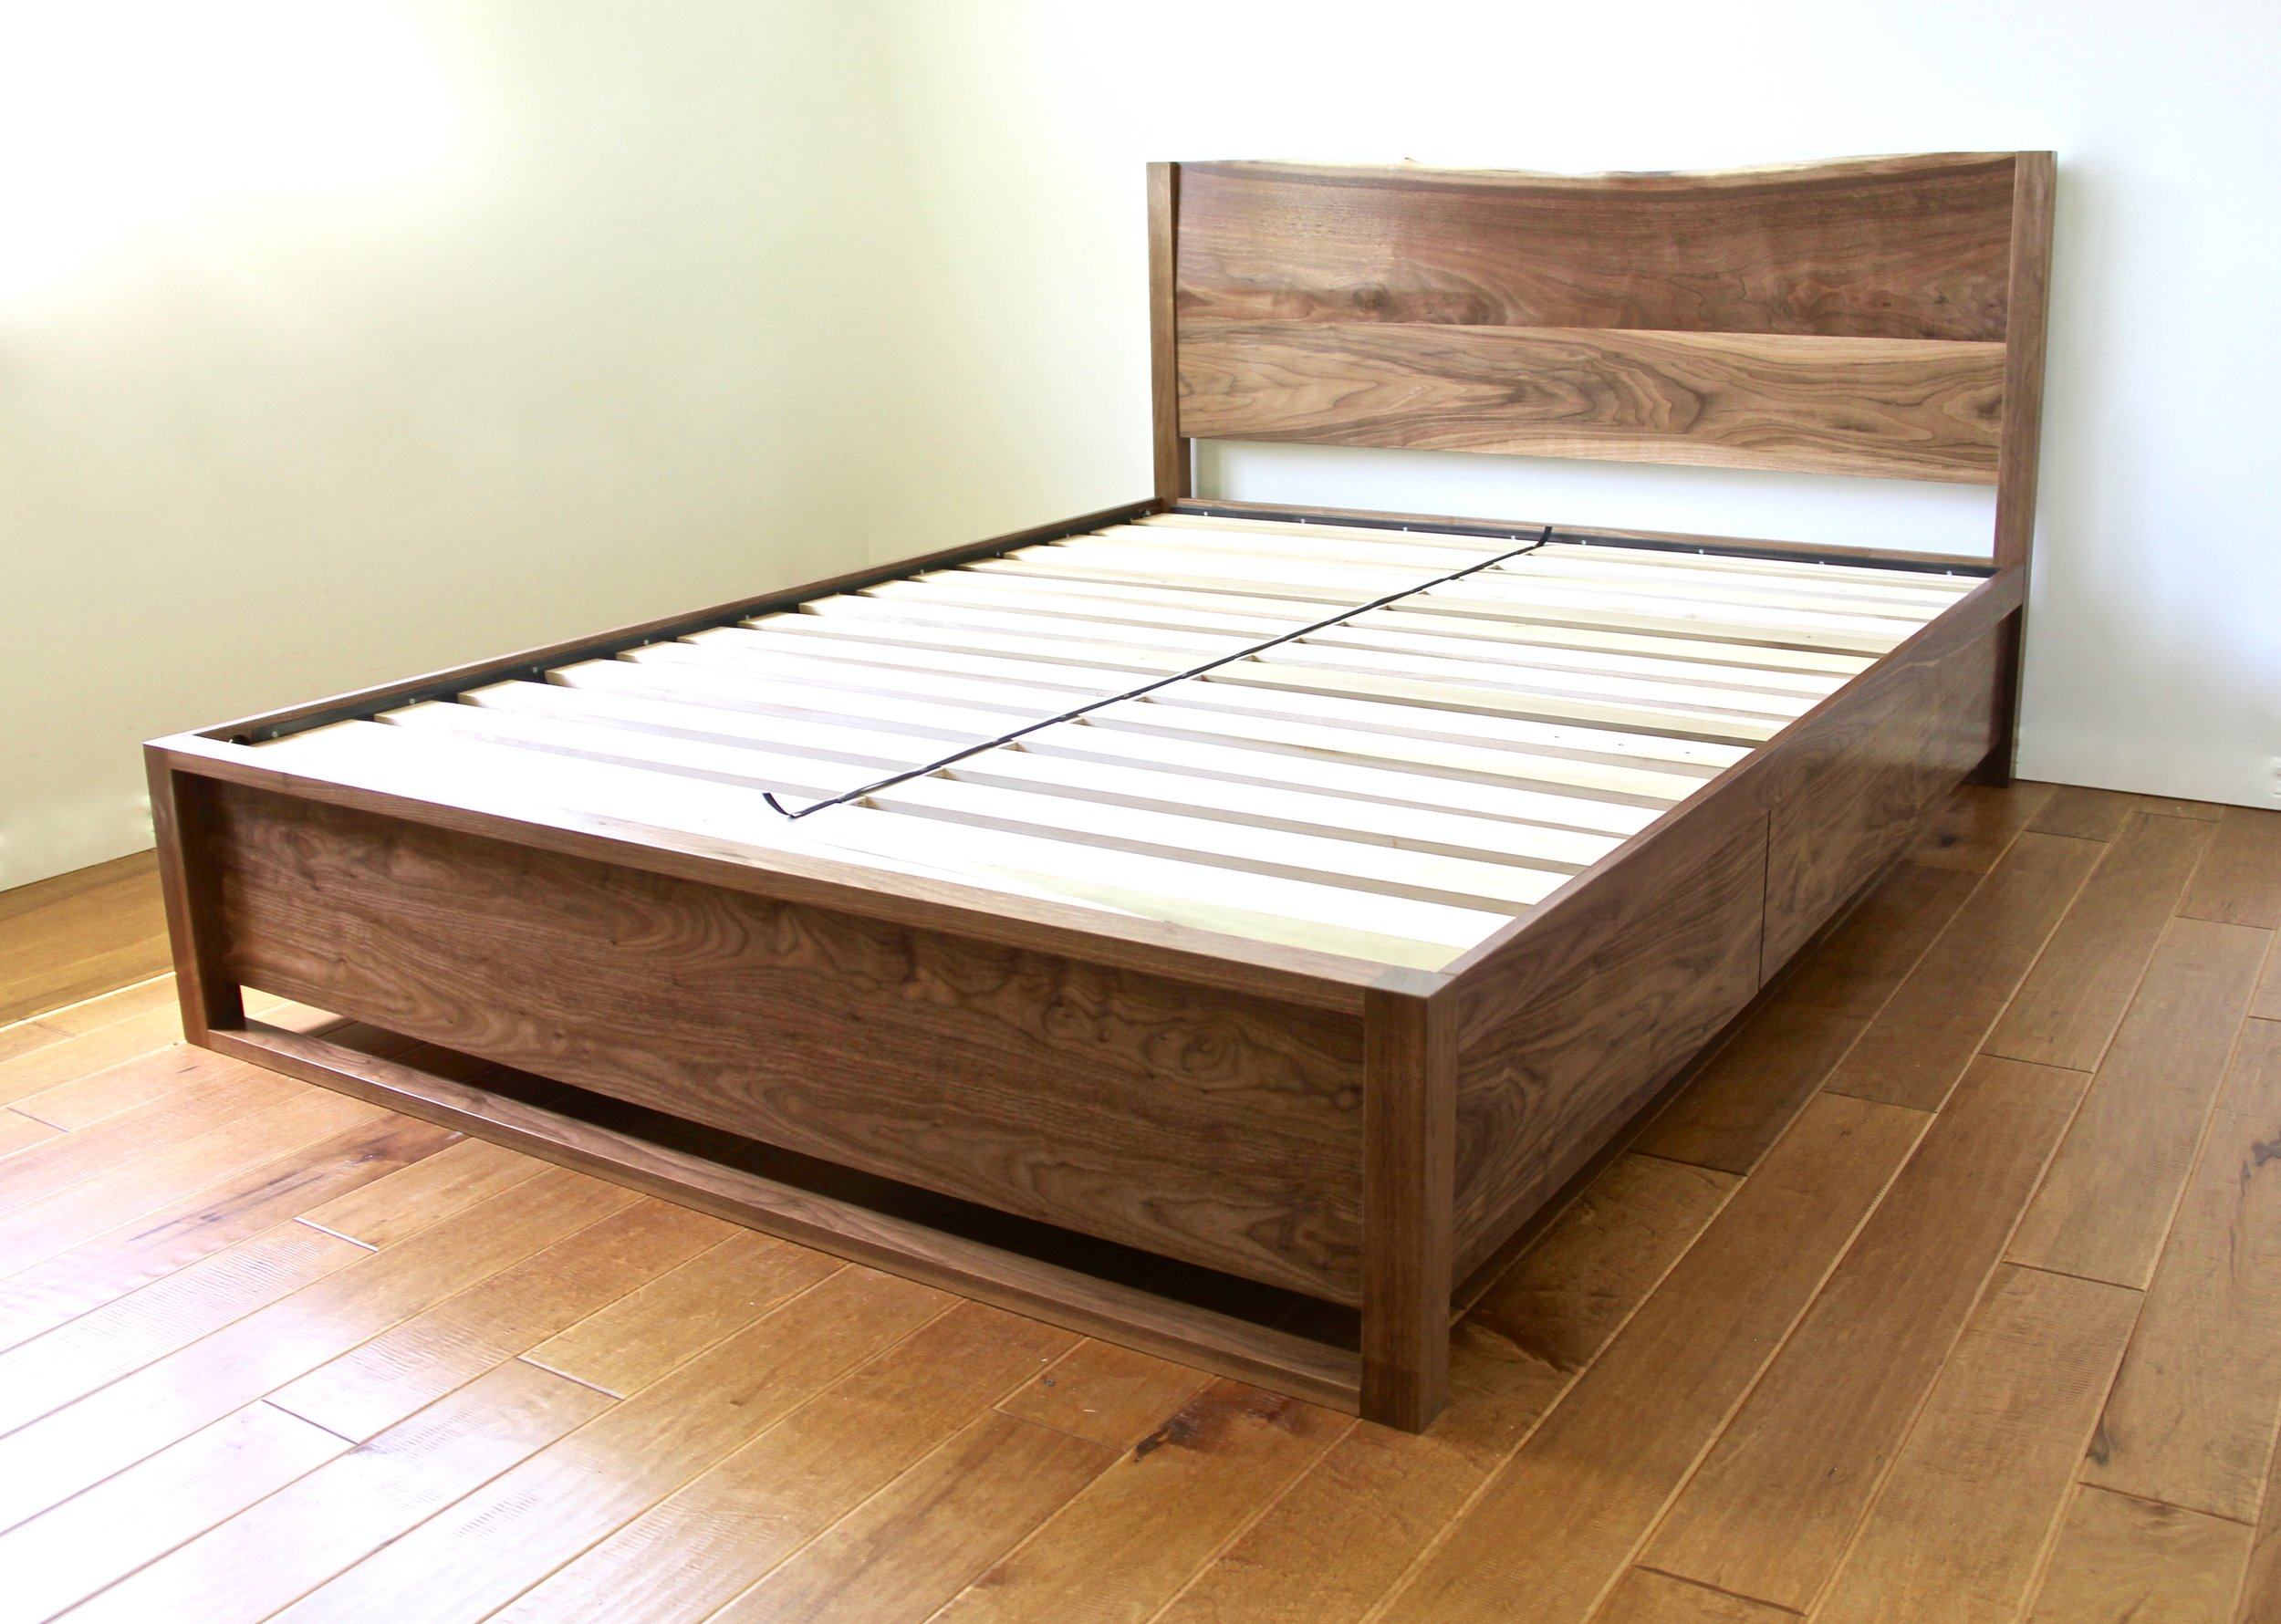 Custom Live-Edge Black Walnut Bed with Four Drawers